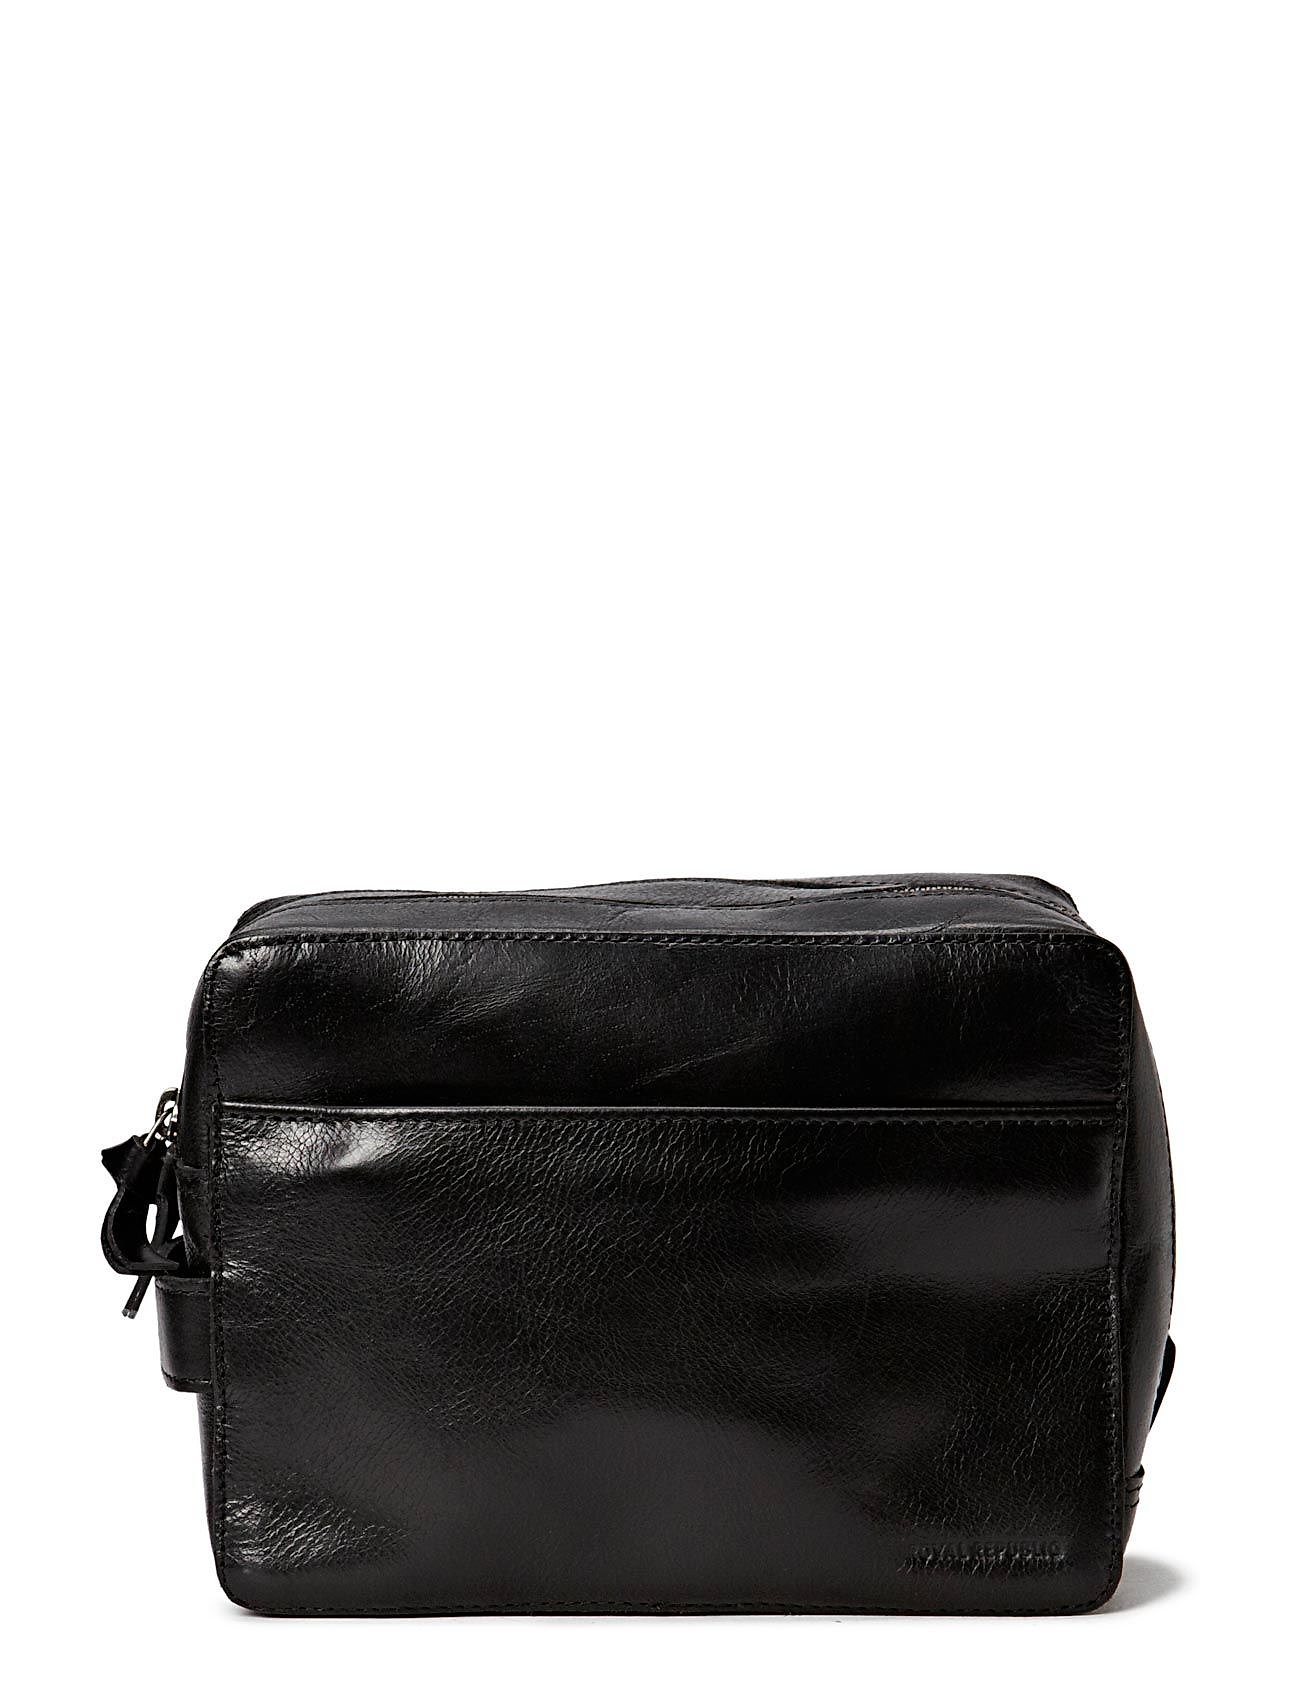 Royal RepubliQ Gemin Toilet Bag Mini - BLACK